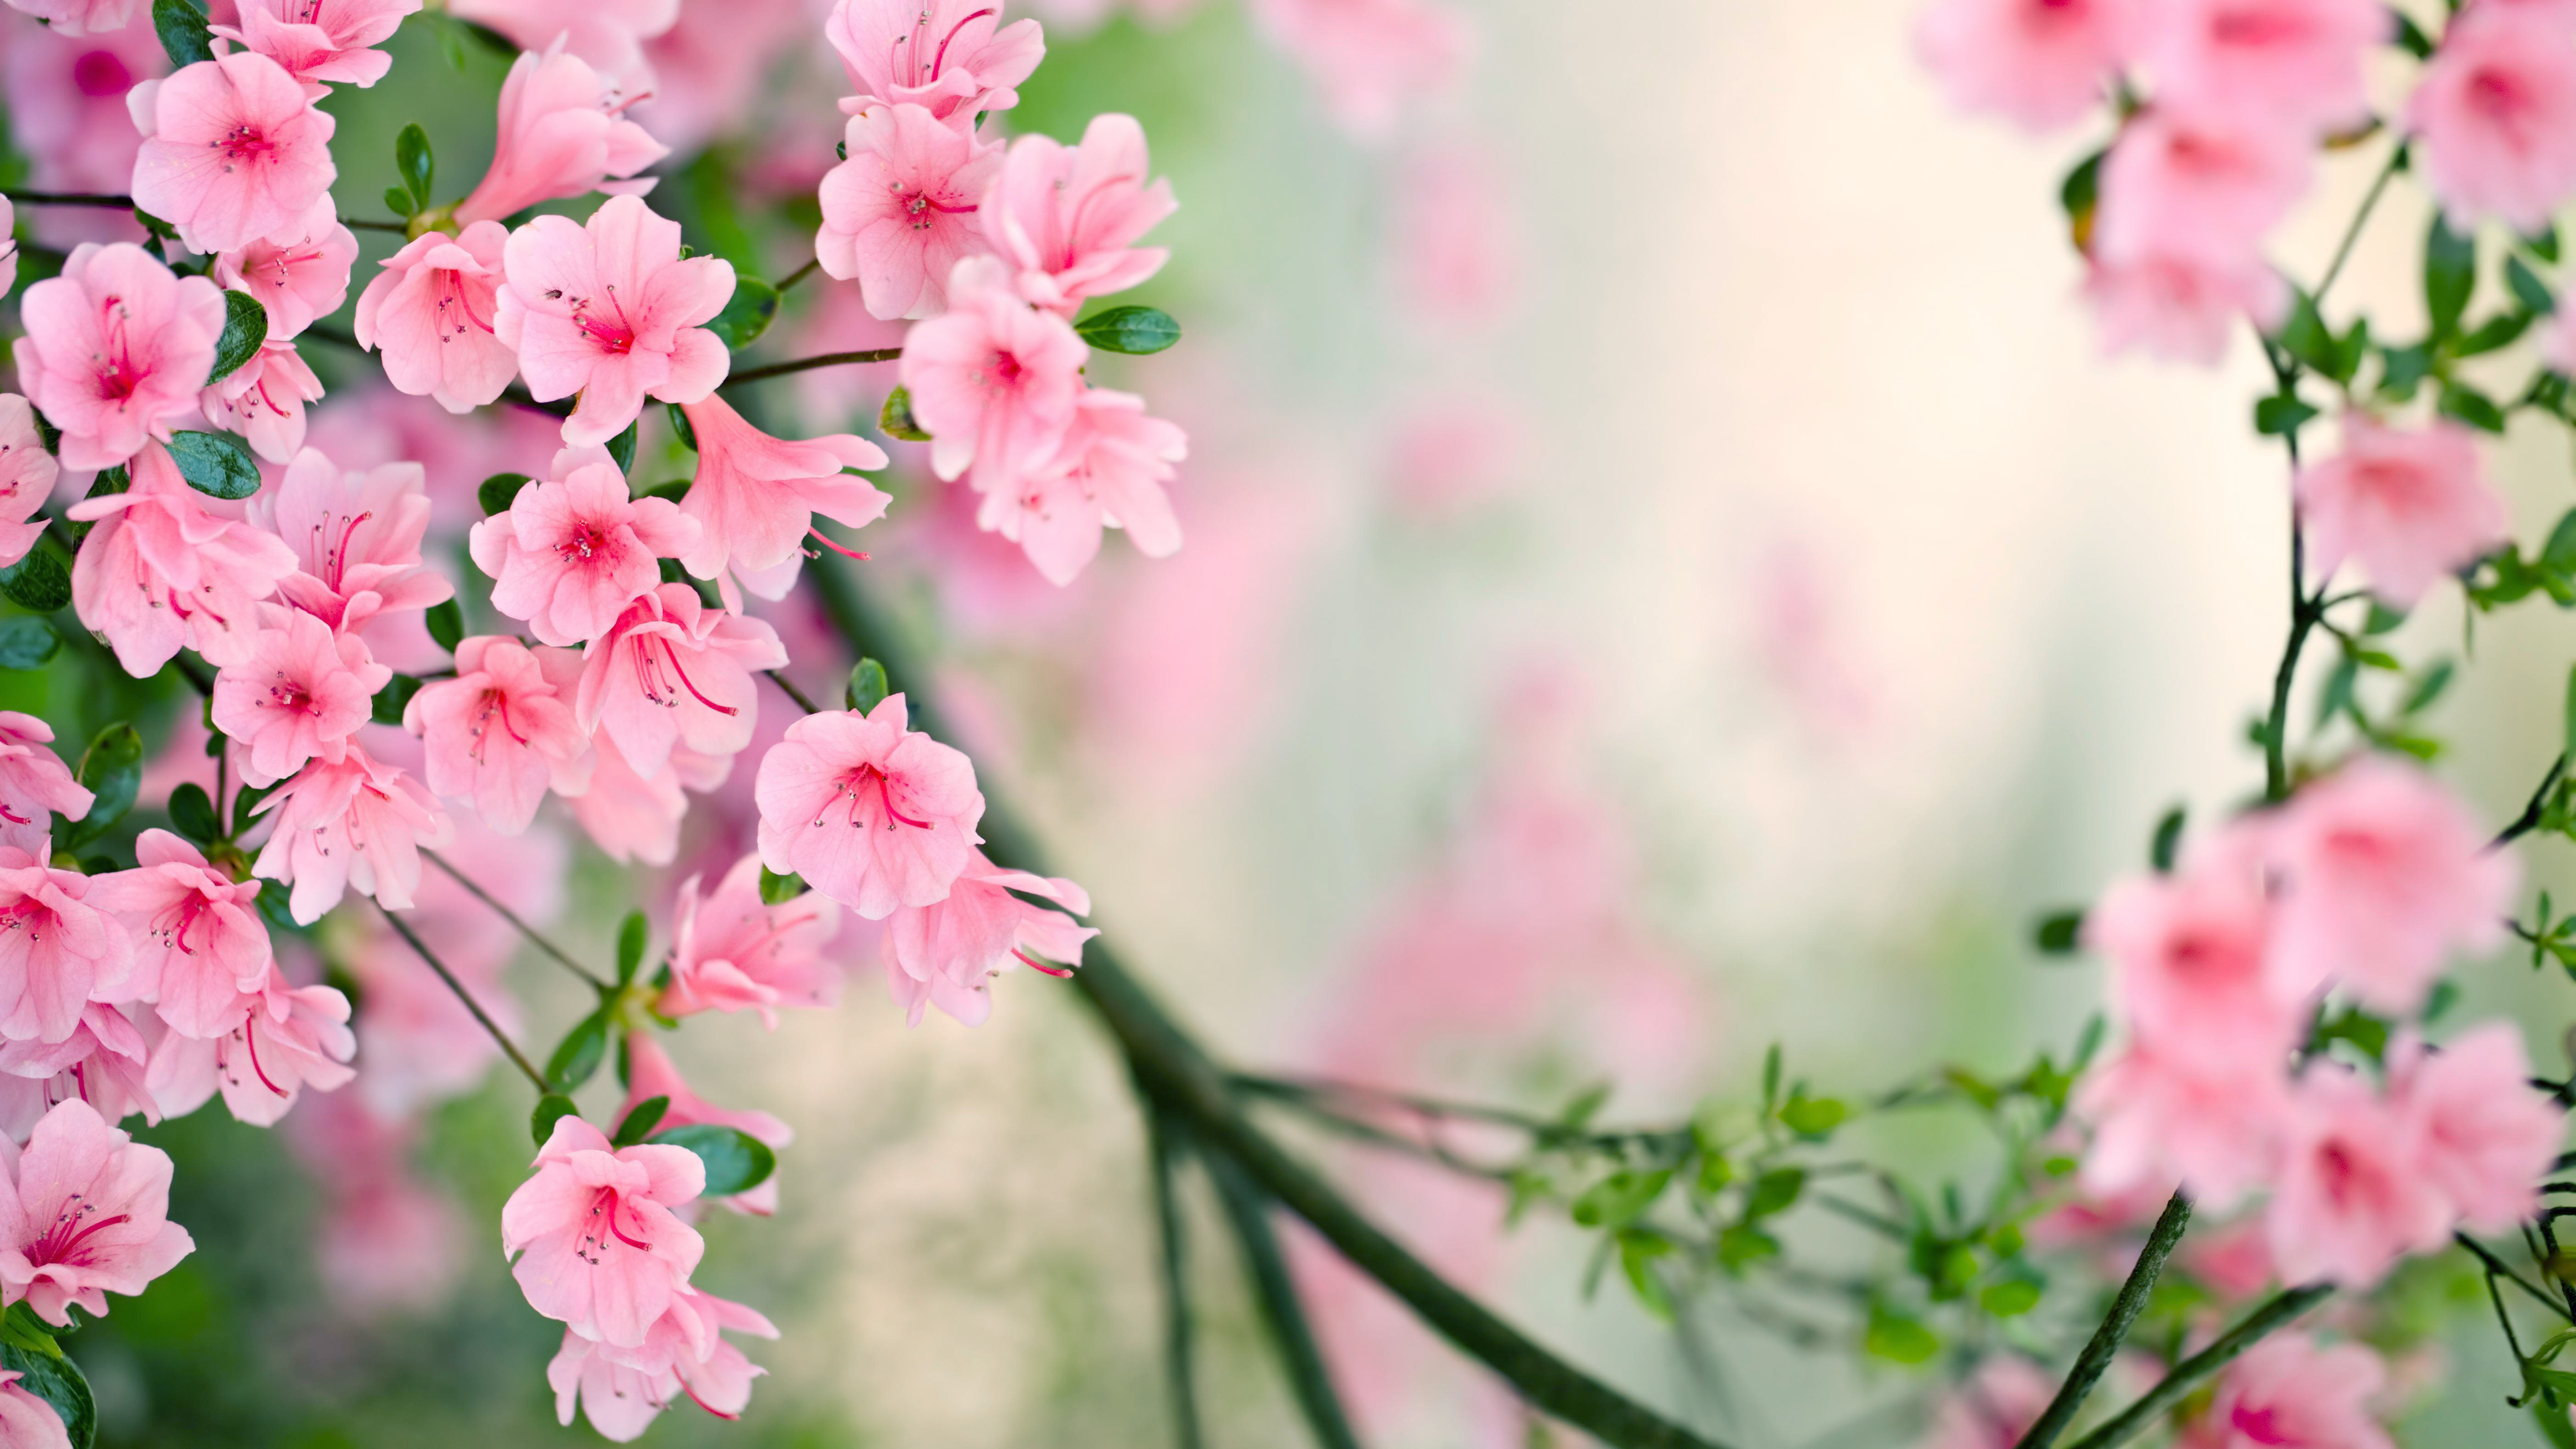 Nature Spring Desktop Wallpapers for Widescreen HD 5120x2880